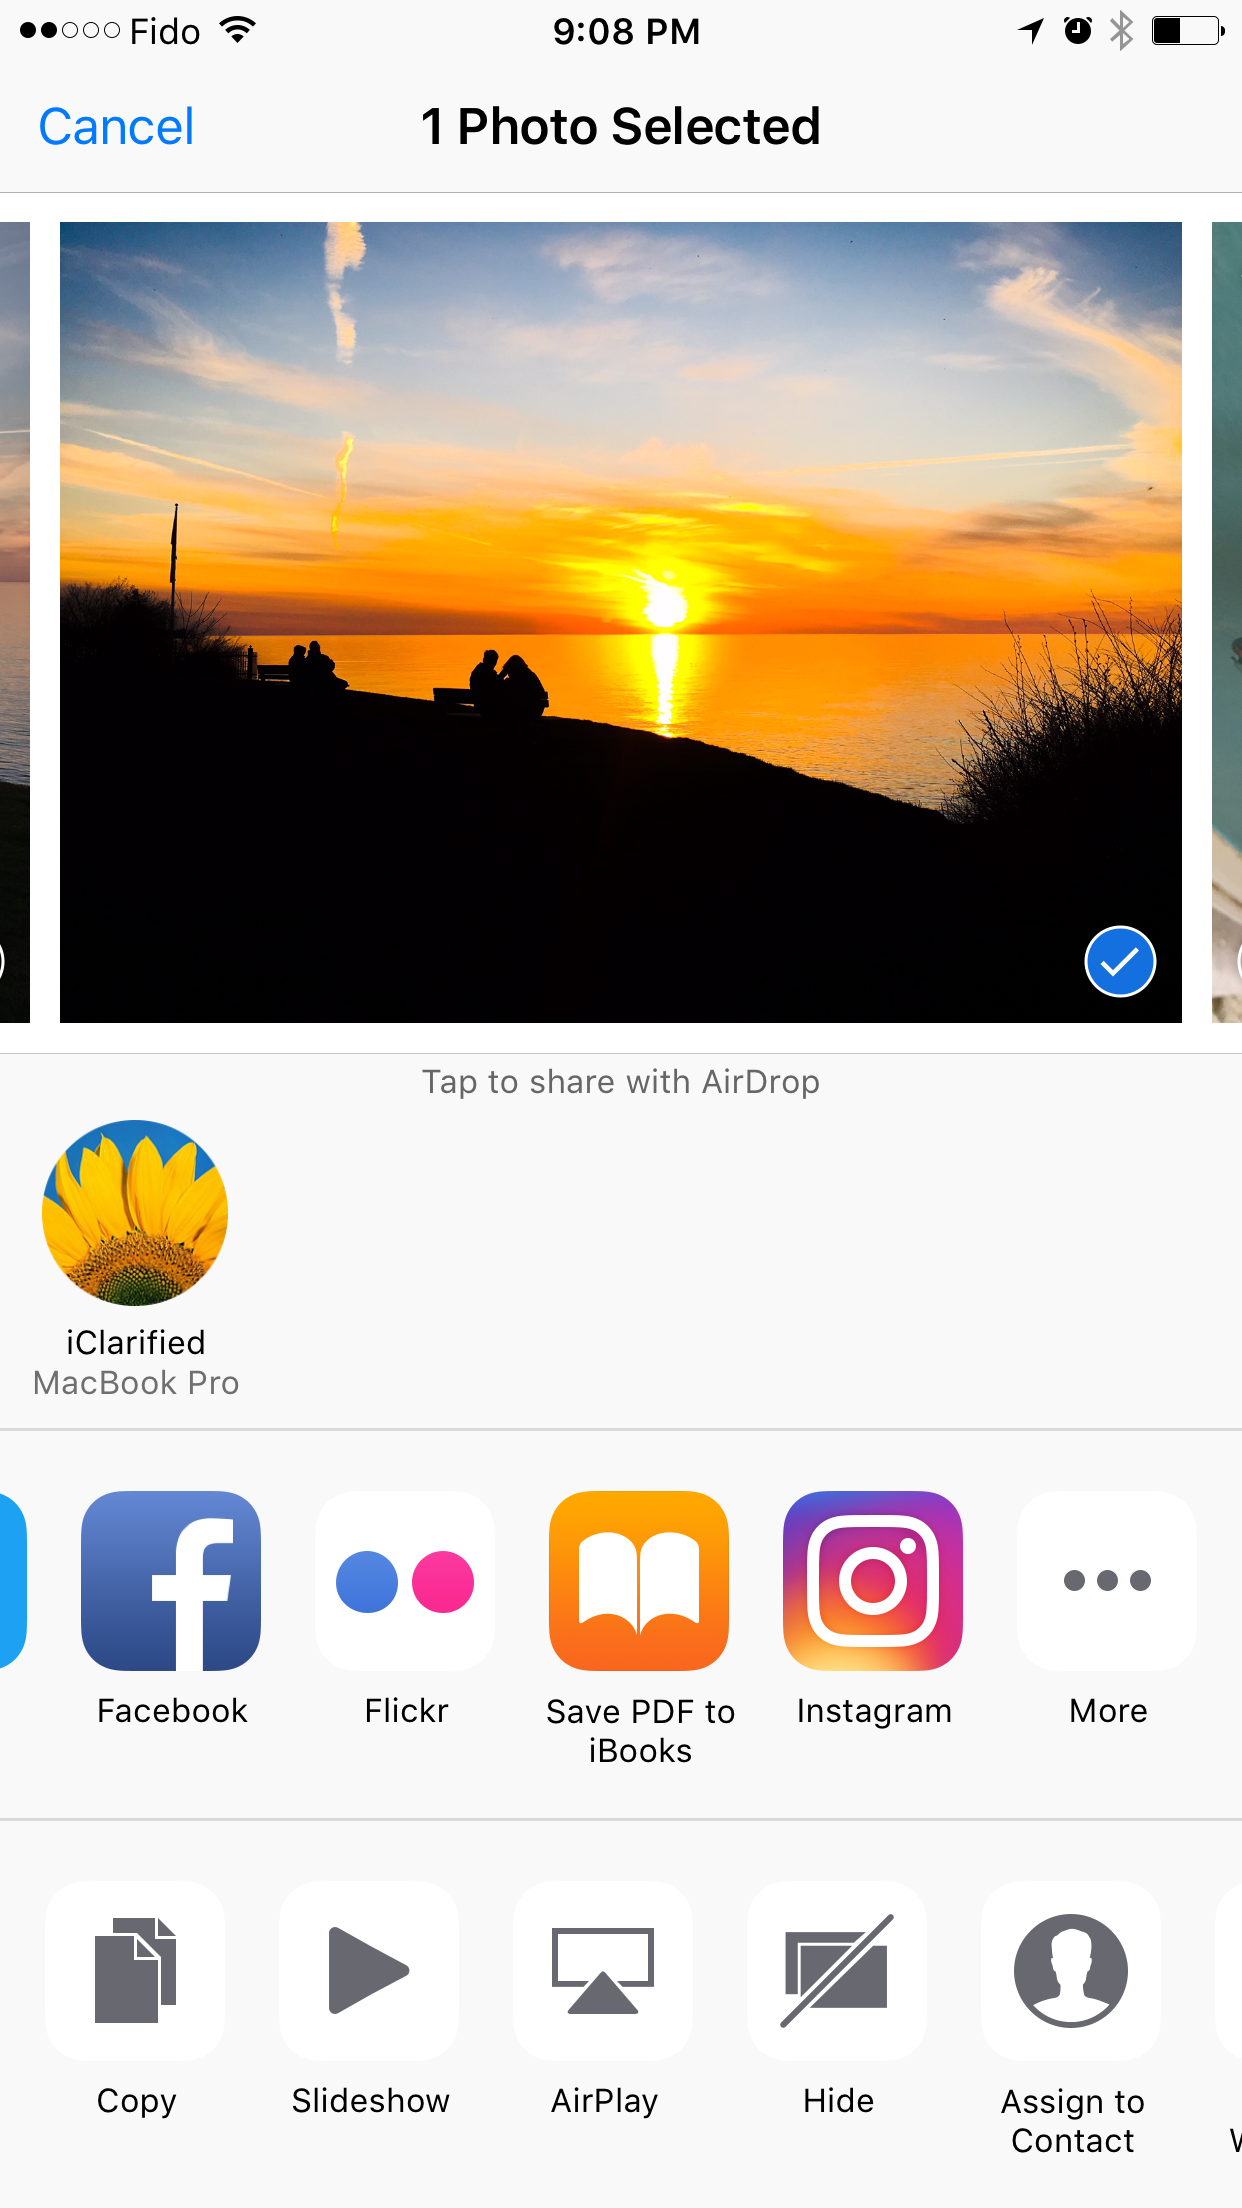 You Can Finally Post to Instagram Directly From Any iPhone App Including the Photos App